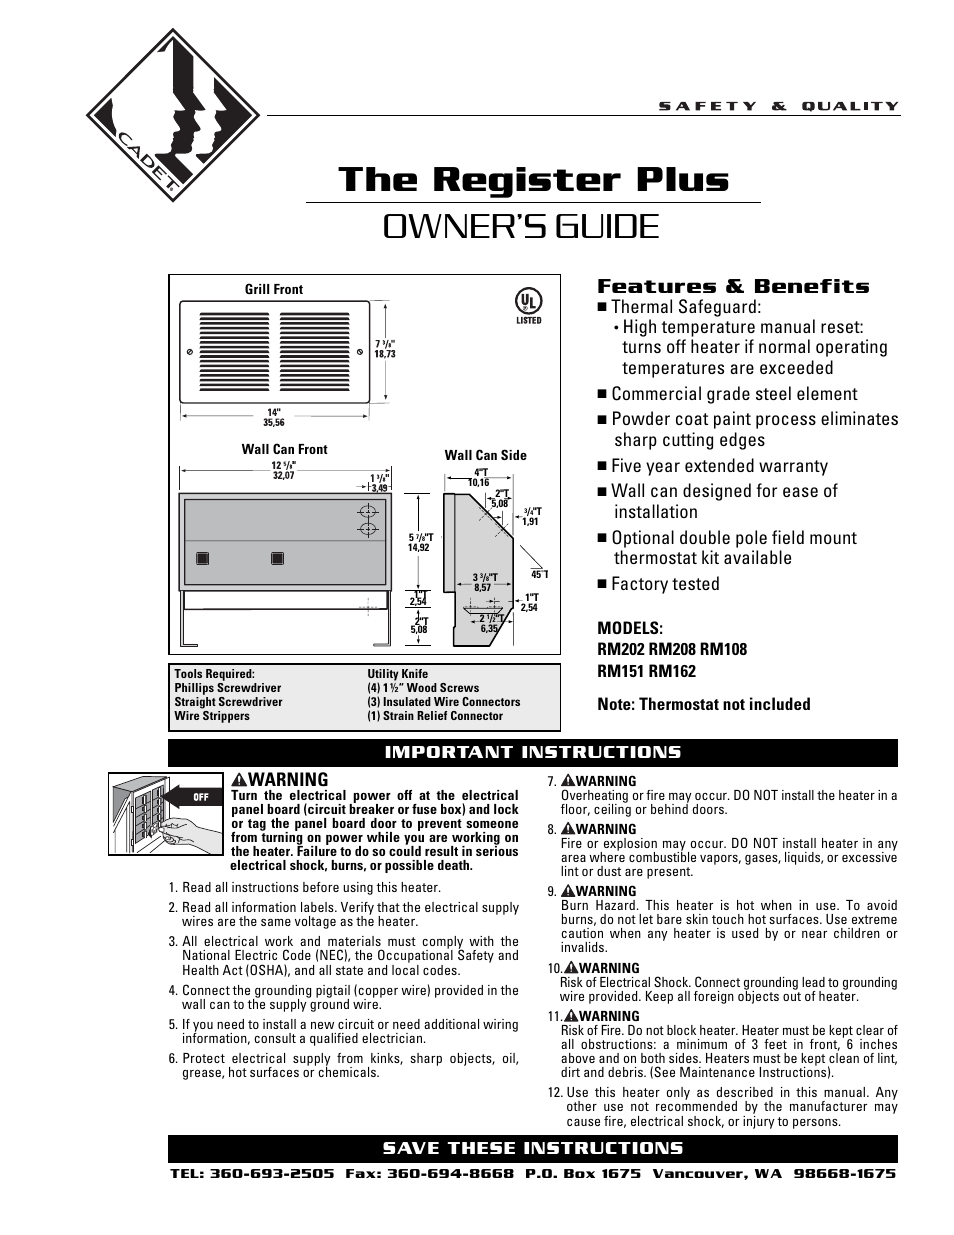 Cadet The Register Plus Rm108 User Manual 8 Pages Also